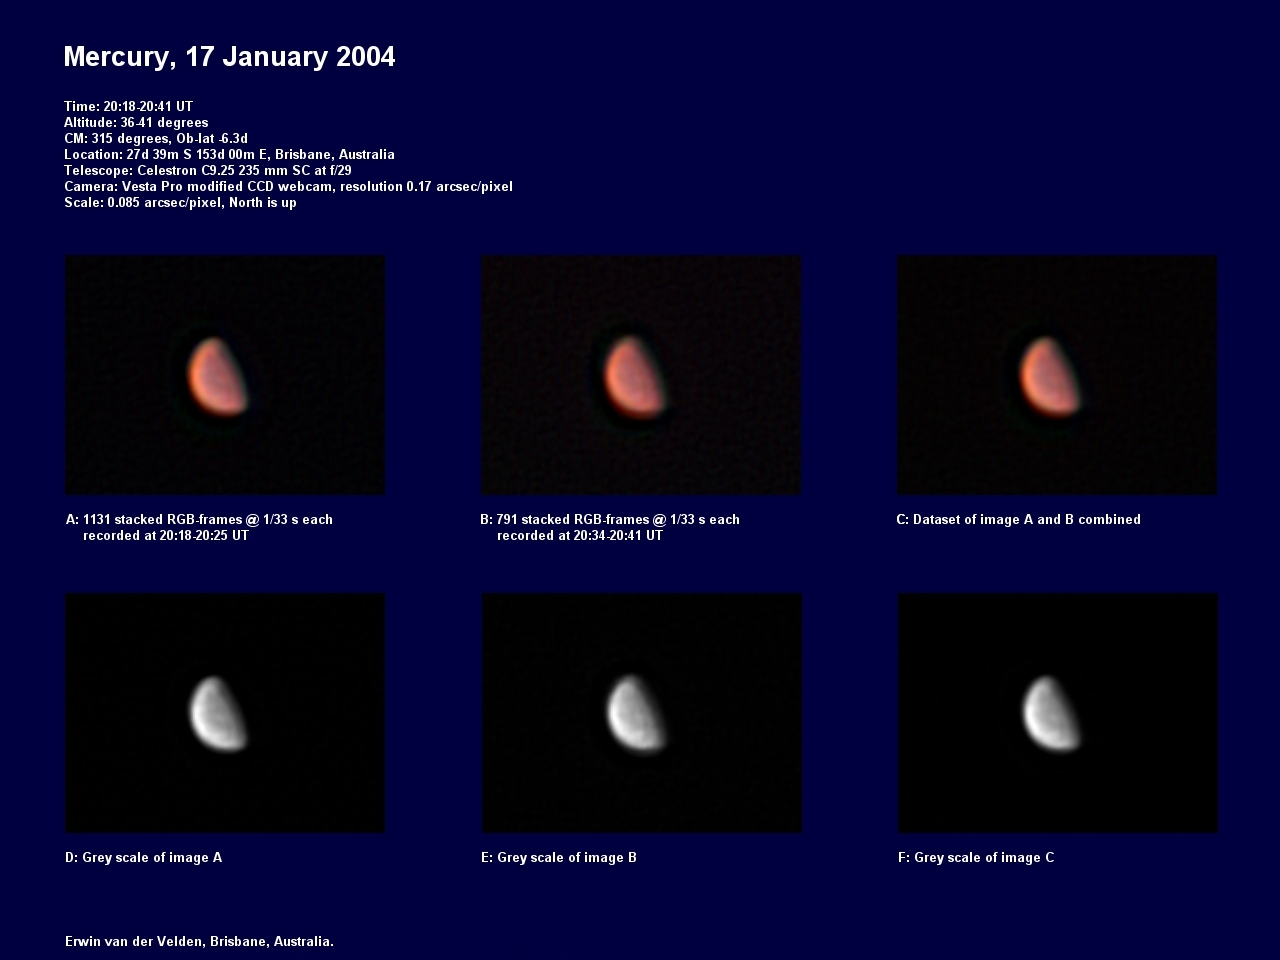 Mercury image captured on the 17th of January 2004